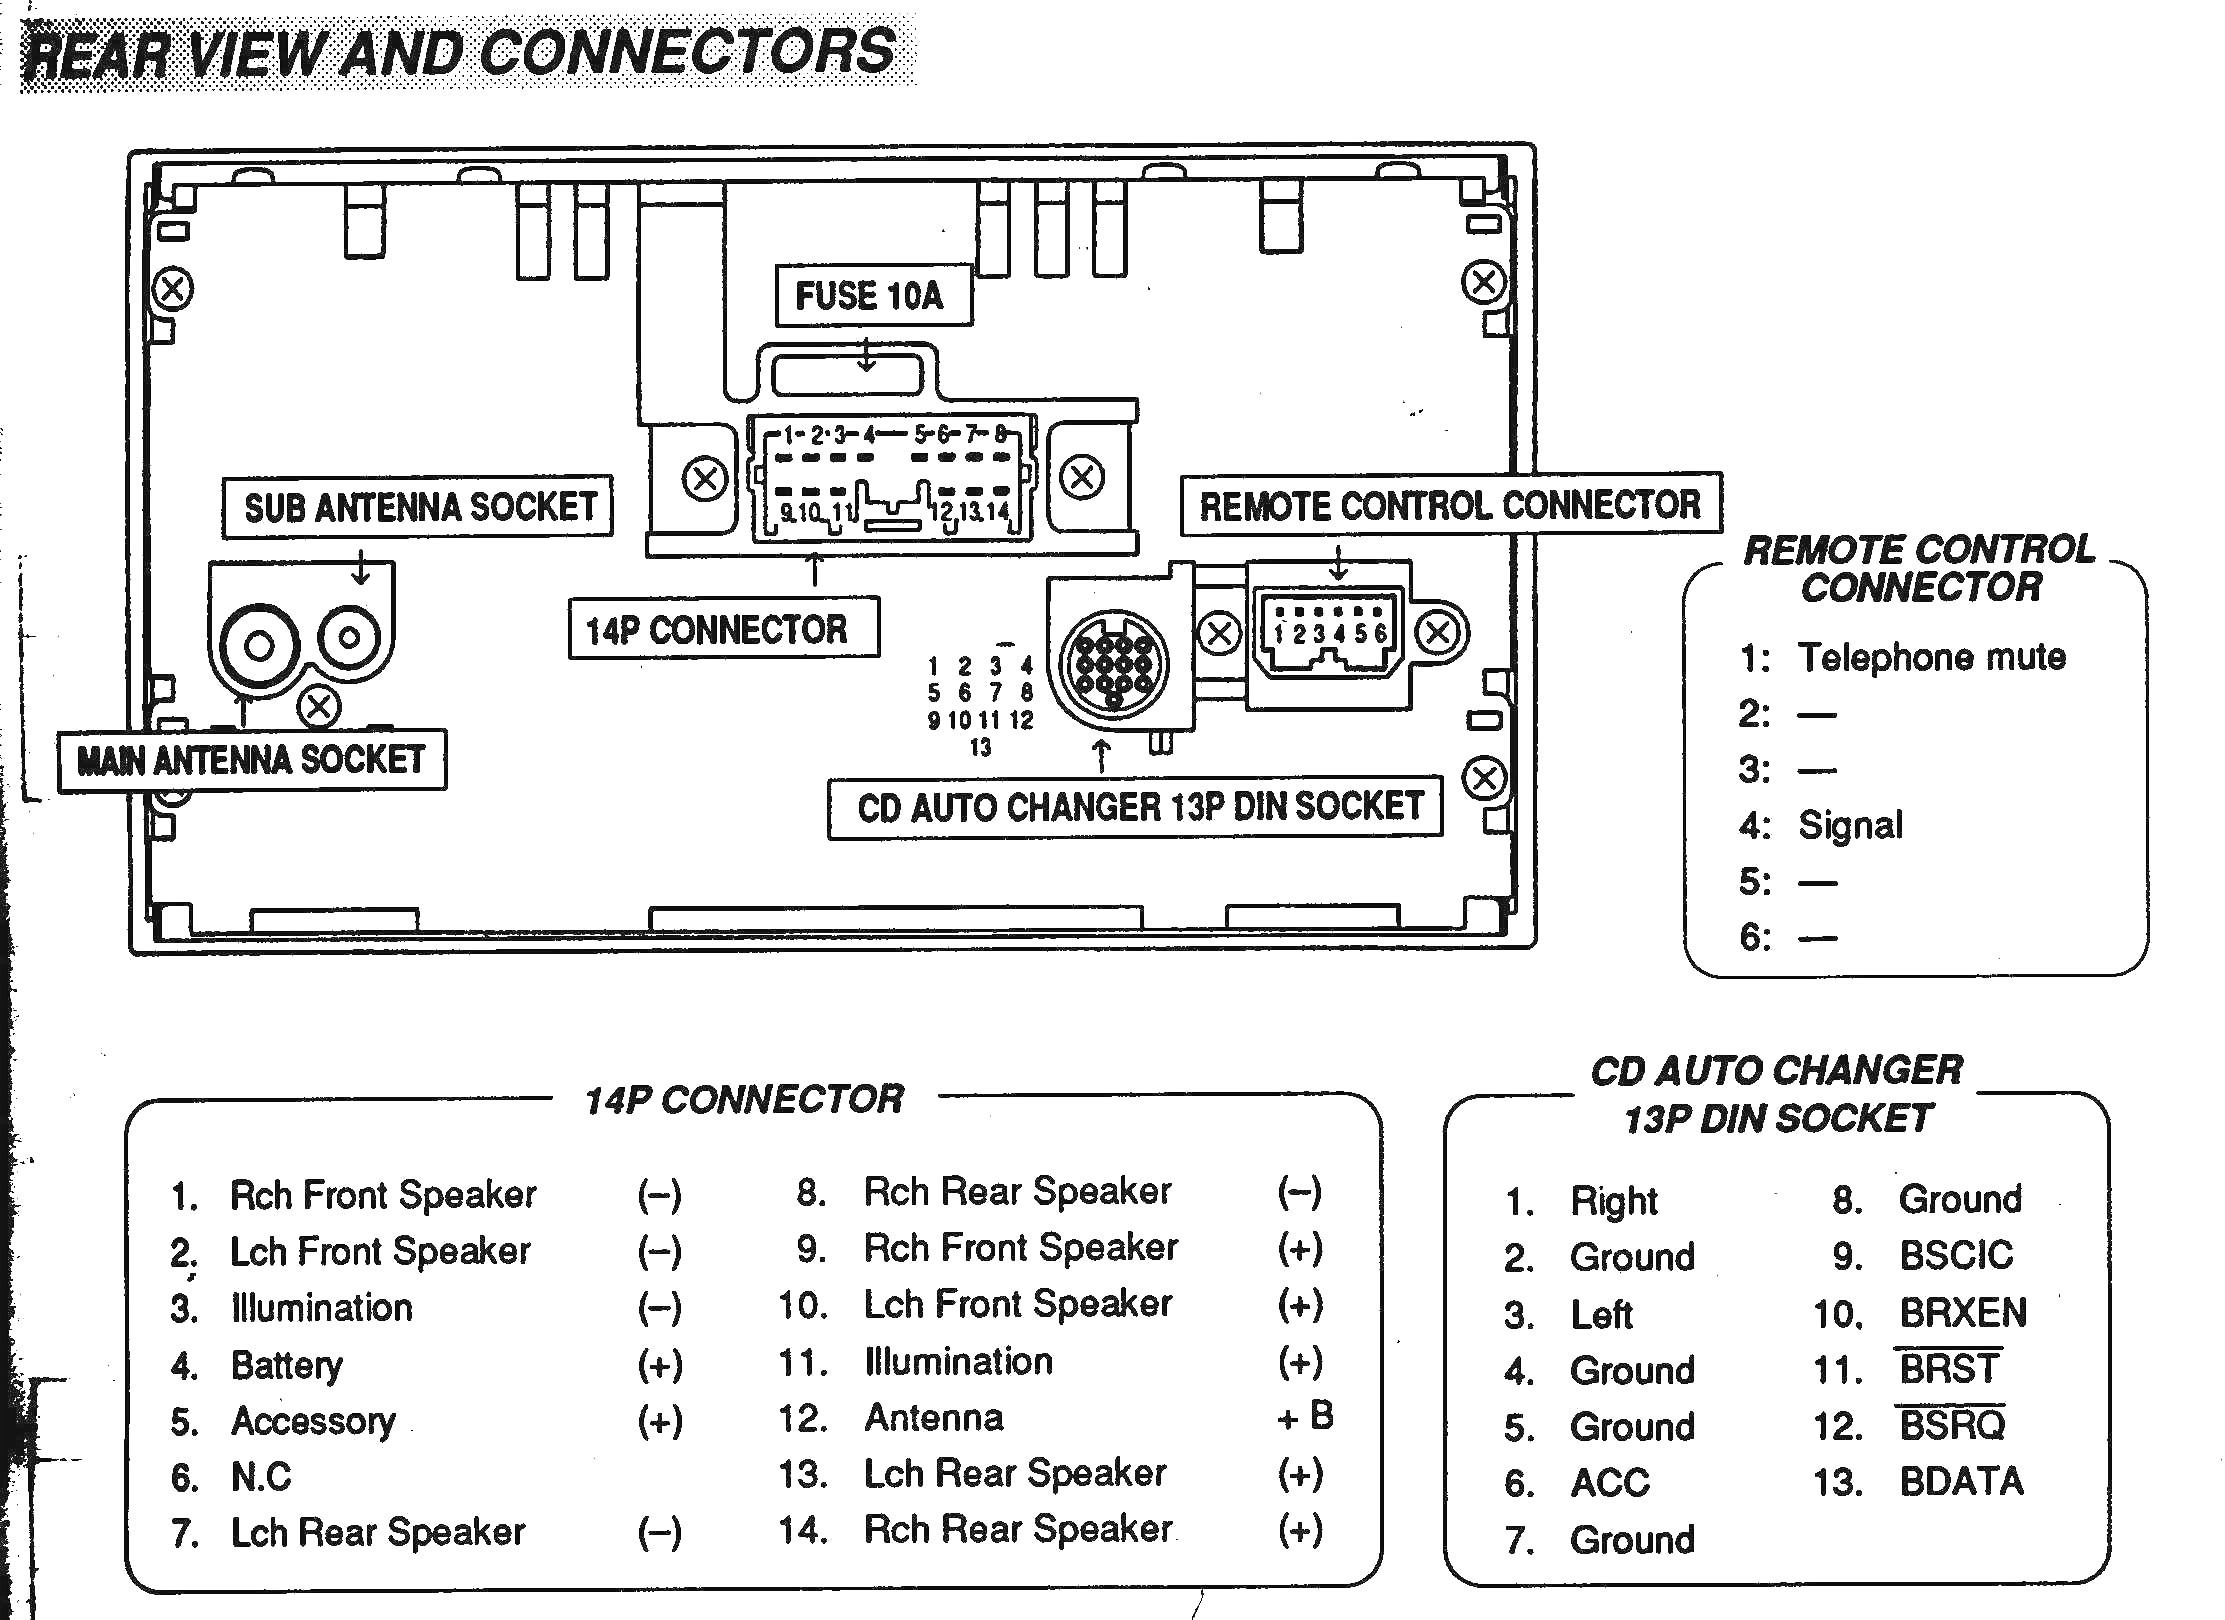 2007 scion tc radio wiring diagram wiring diagram image rh mainetreasurechest com Basic Electrical Wiring Diagrams Residential Electrical Wiring Diagrams